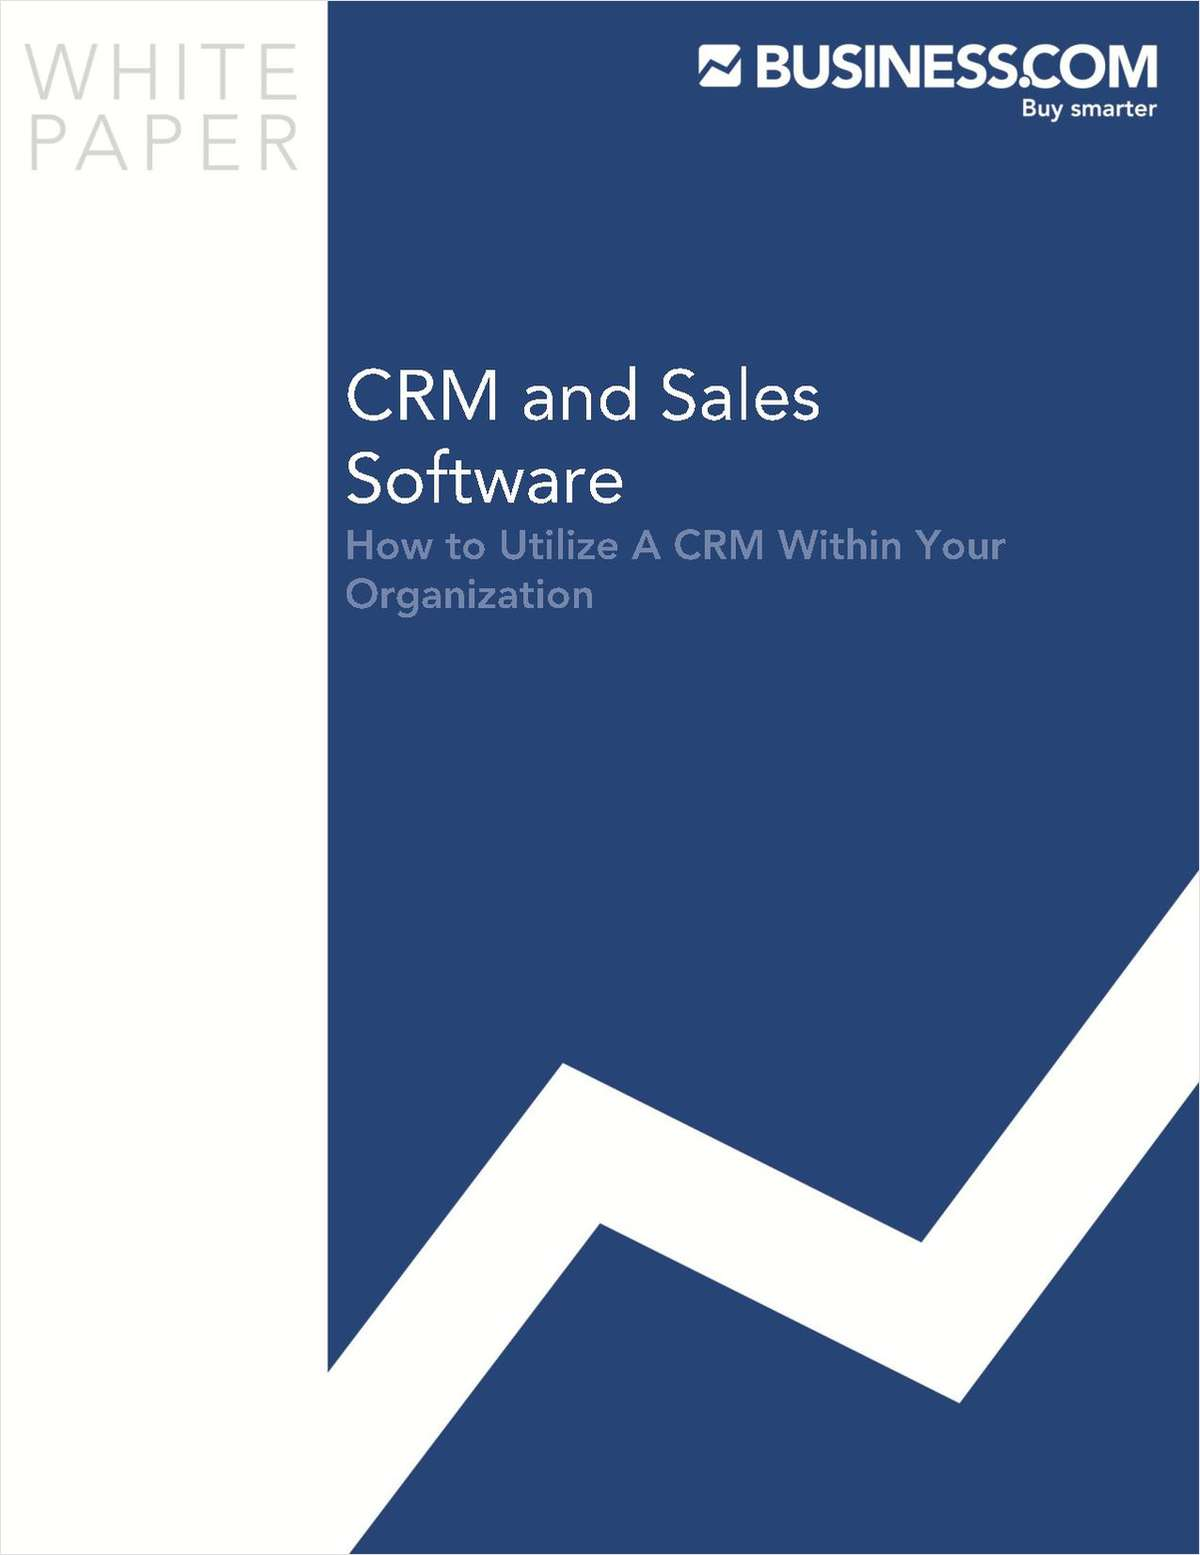 How to Utilize a CRM Within Your Organization